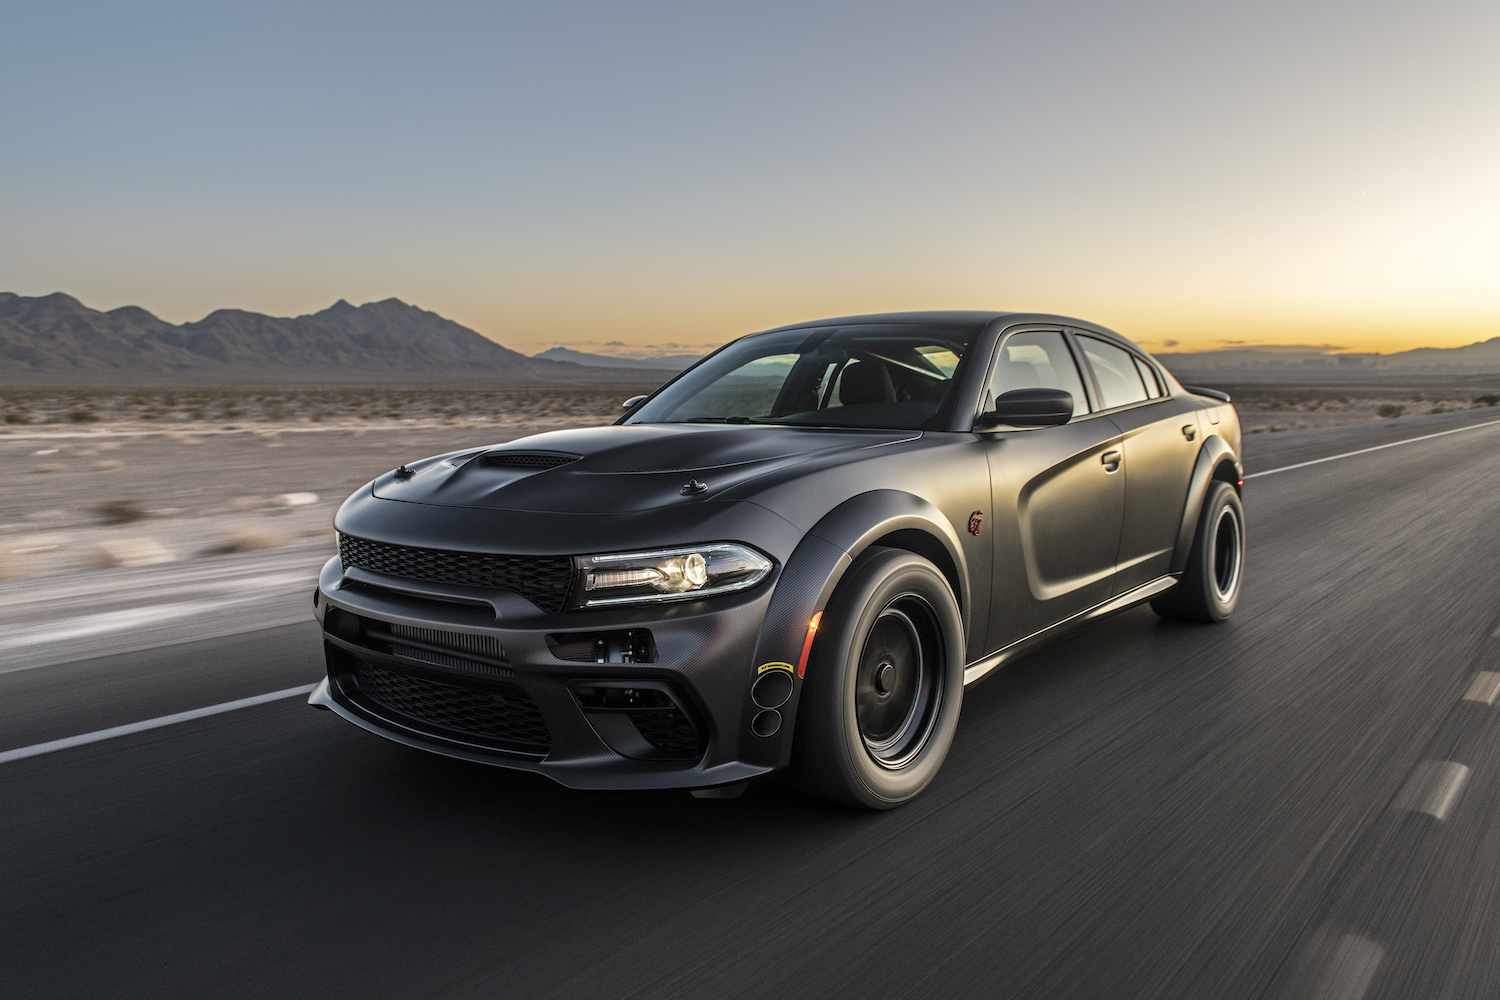 Magnaflow unveils 1525-horsepower, AWD, carbon-fiber Charger Widebody thumbnail